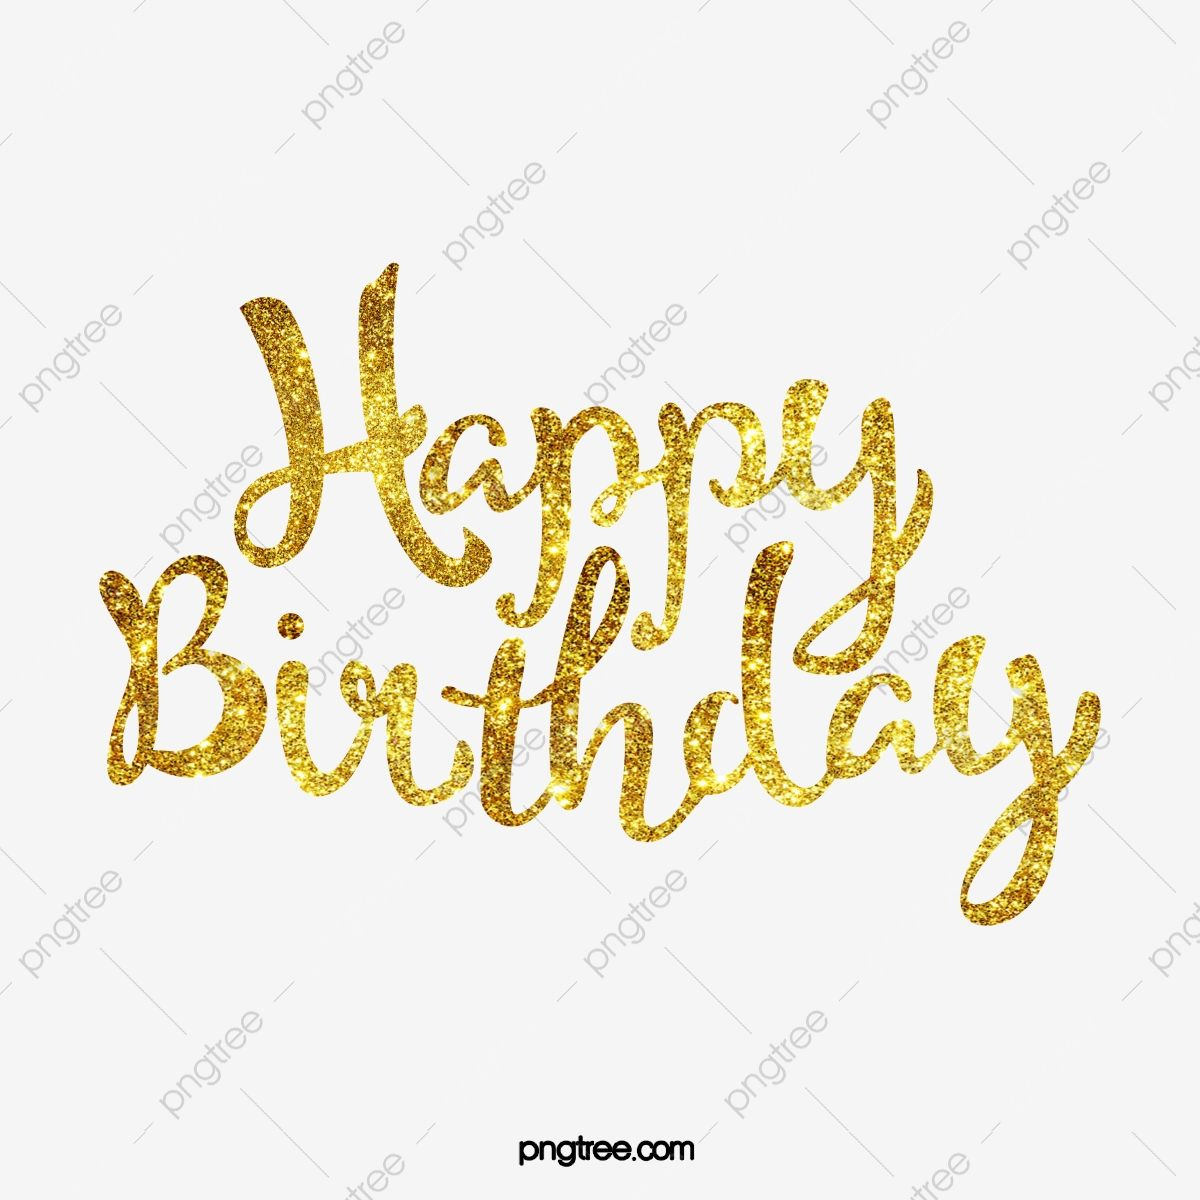 Photo of Golden birthday, birthday clipart, golden, happy birsay PNG transparent image and clipart for free download